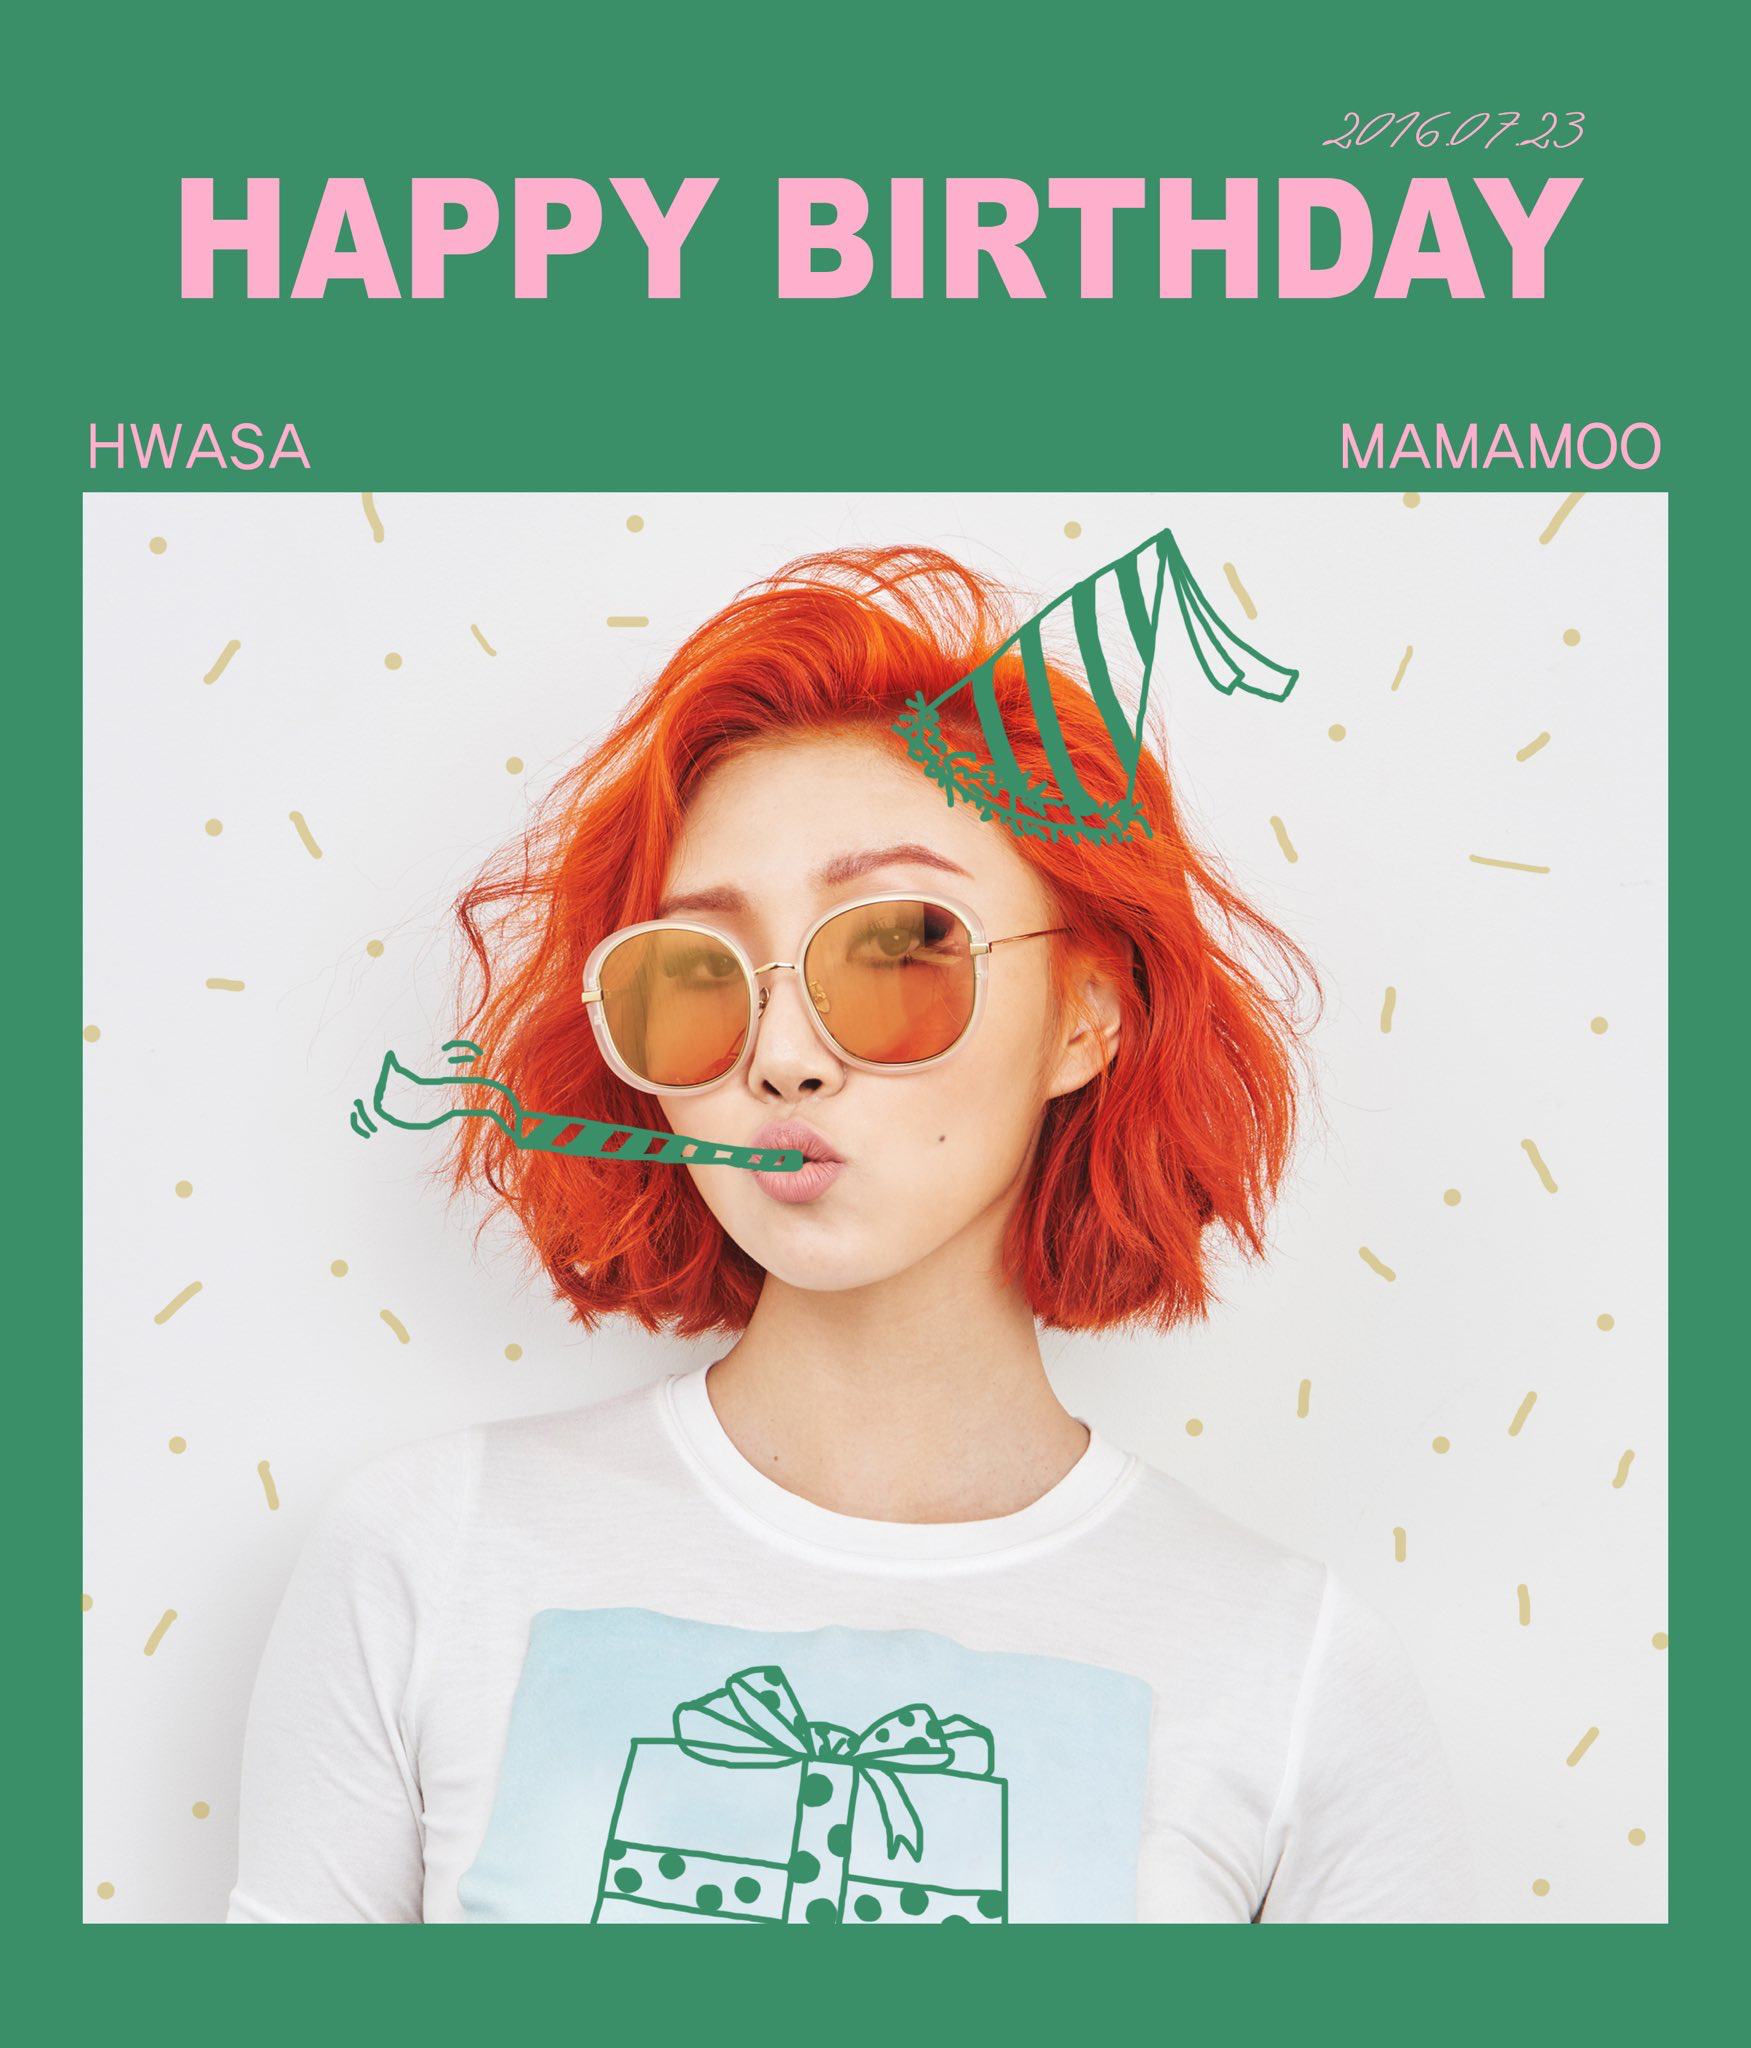 Happy Birthday Hawsa Mamamoo Hwasa Happy Birthday